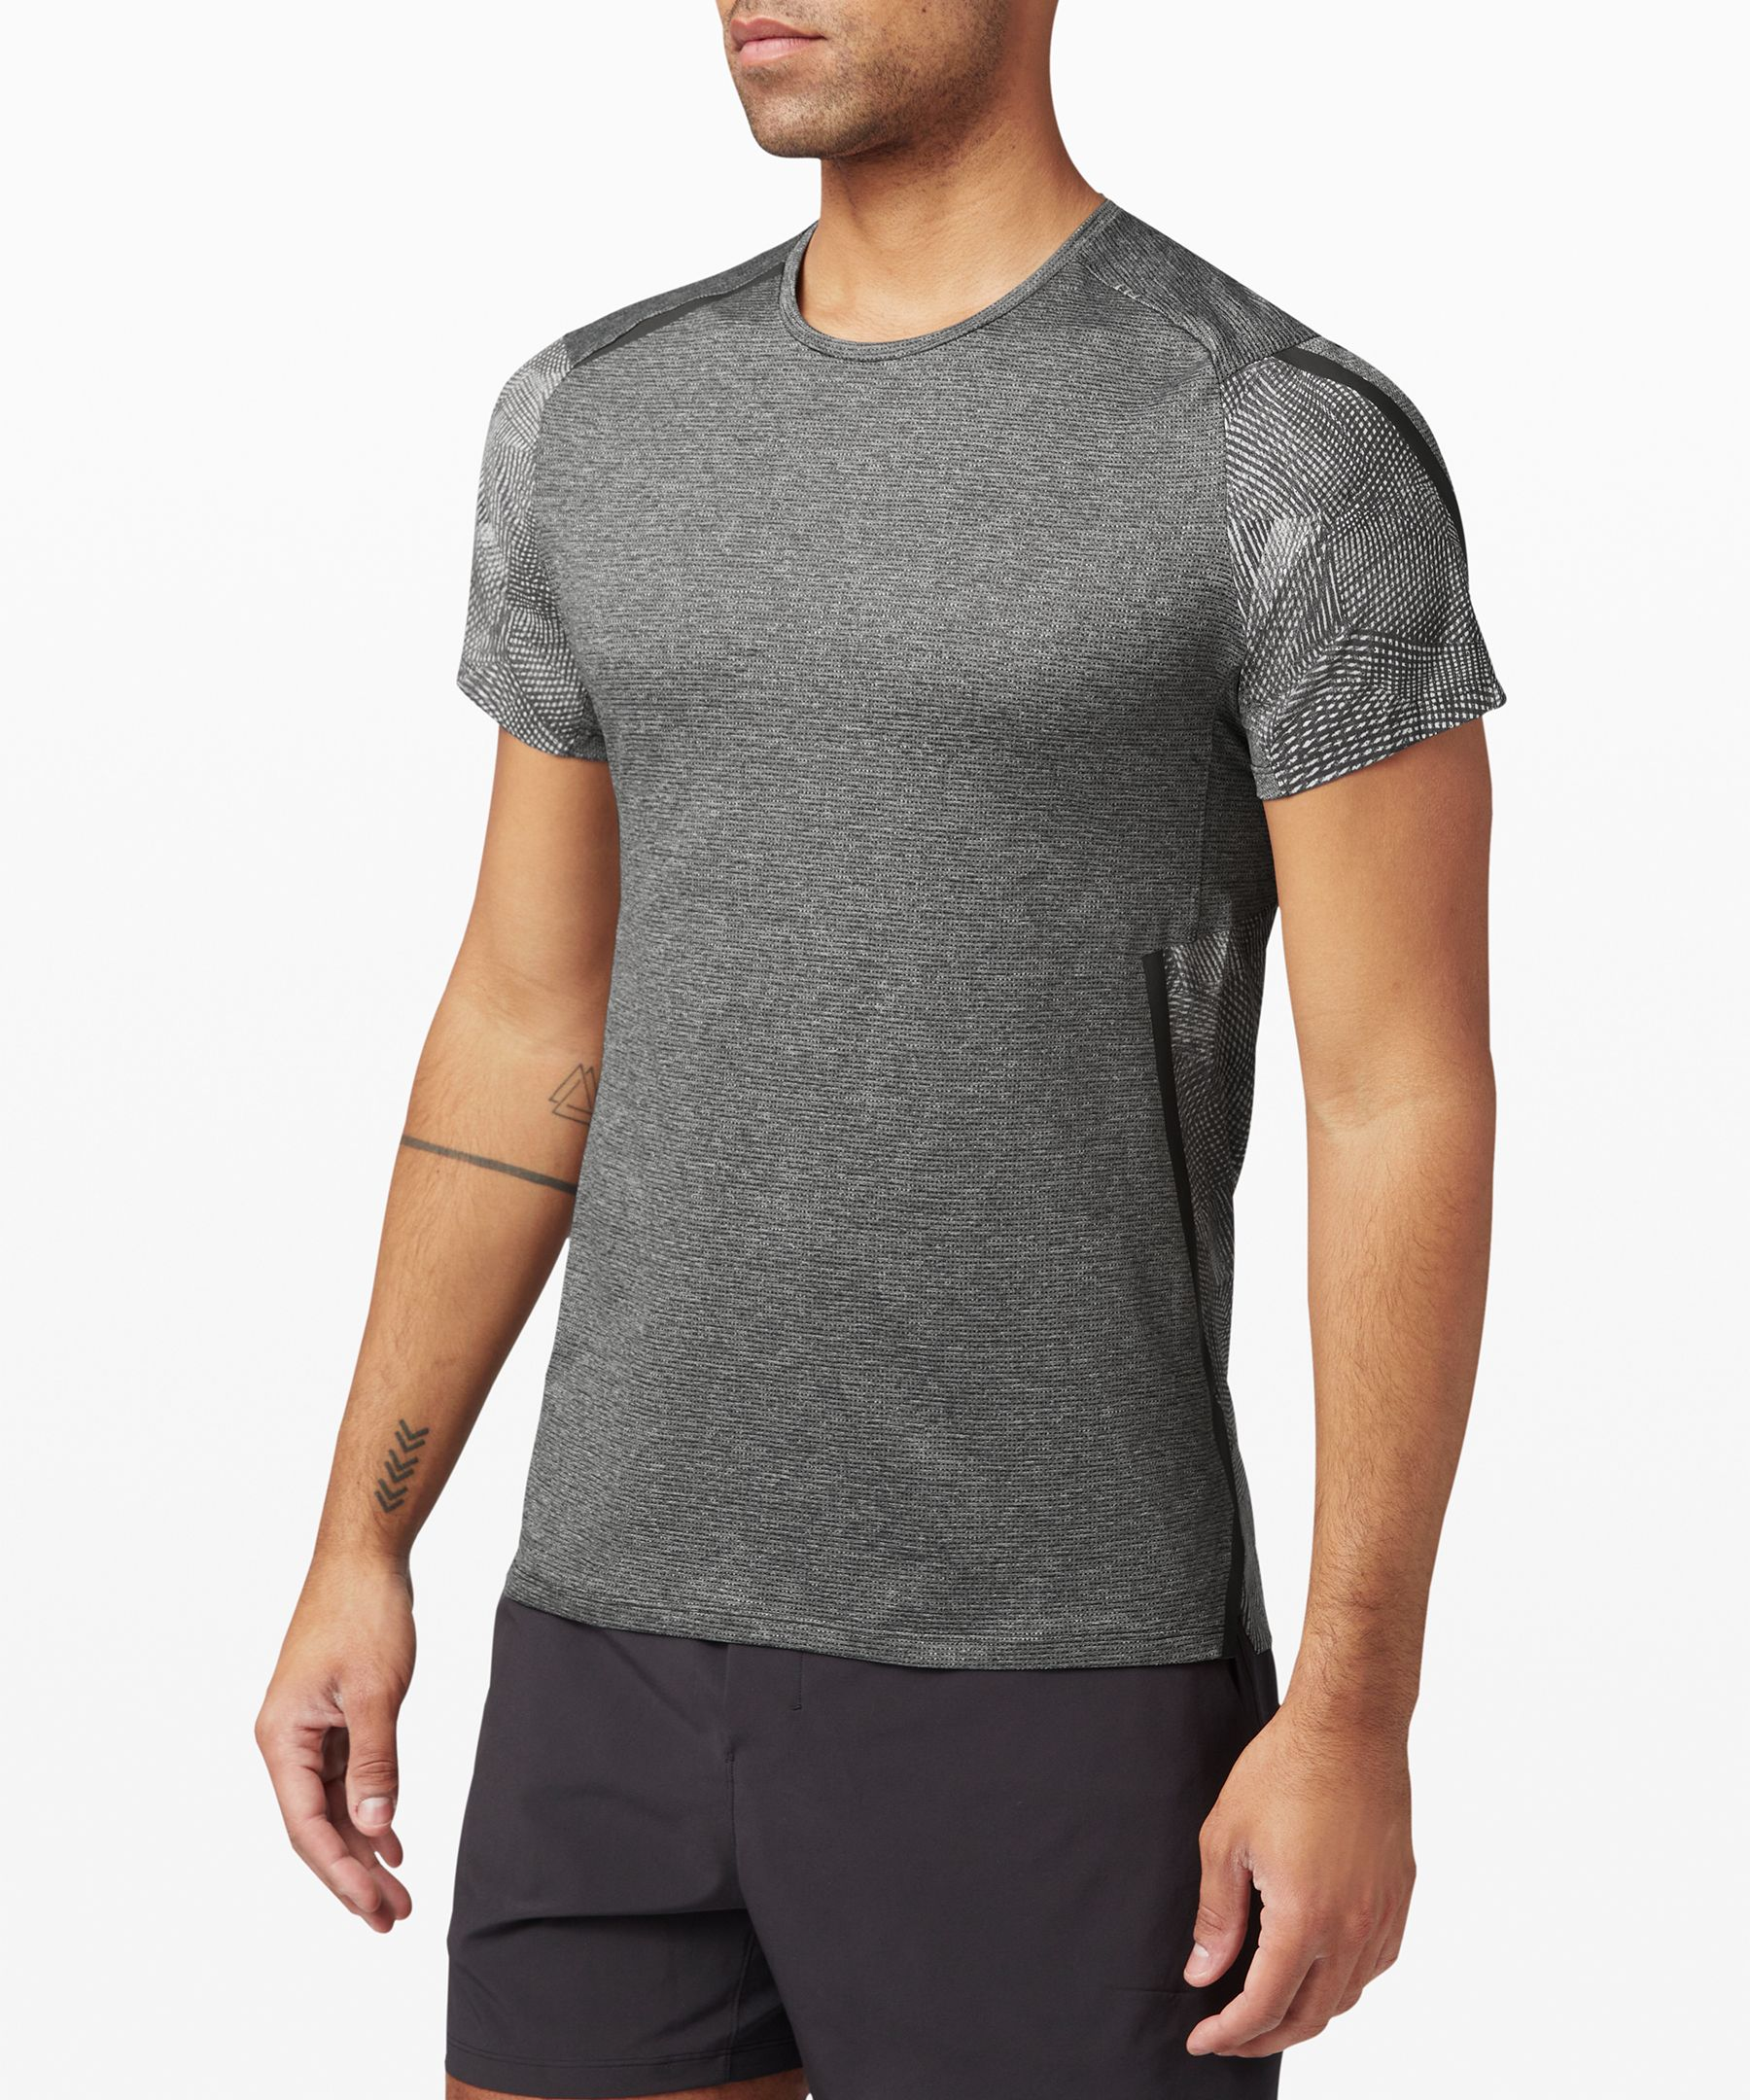 Power through your last mile  with nothing holding you back.  This breathable run top is  made super lightweight Mesh  fabric with overt reflectivity  to keep you feeling fast and  on the radar.